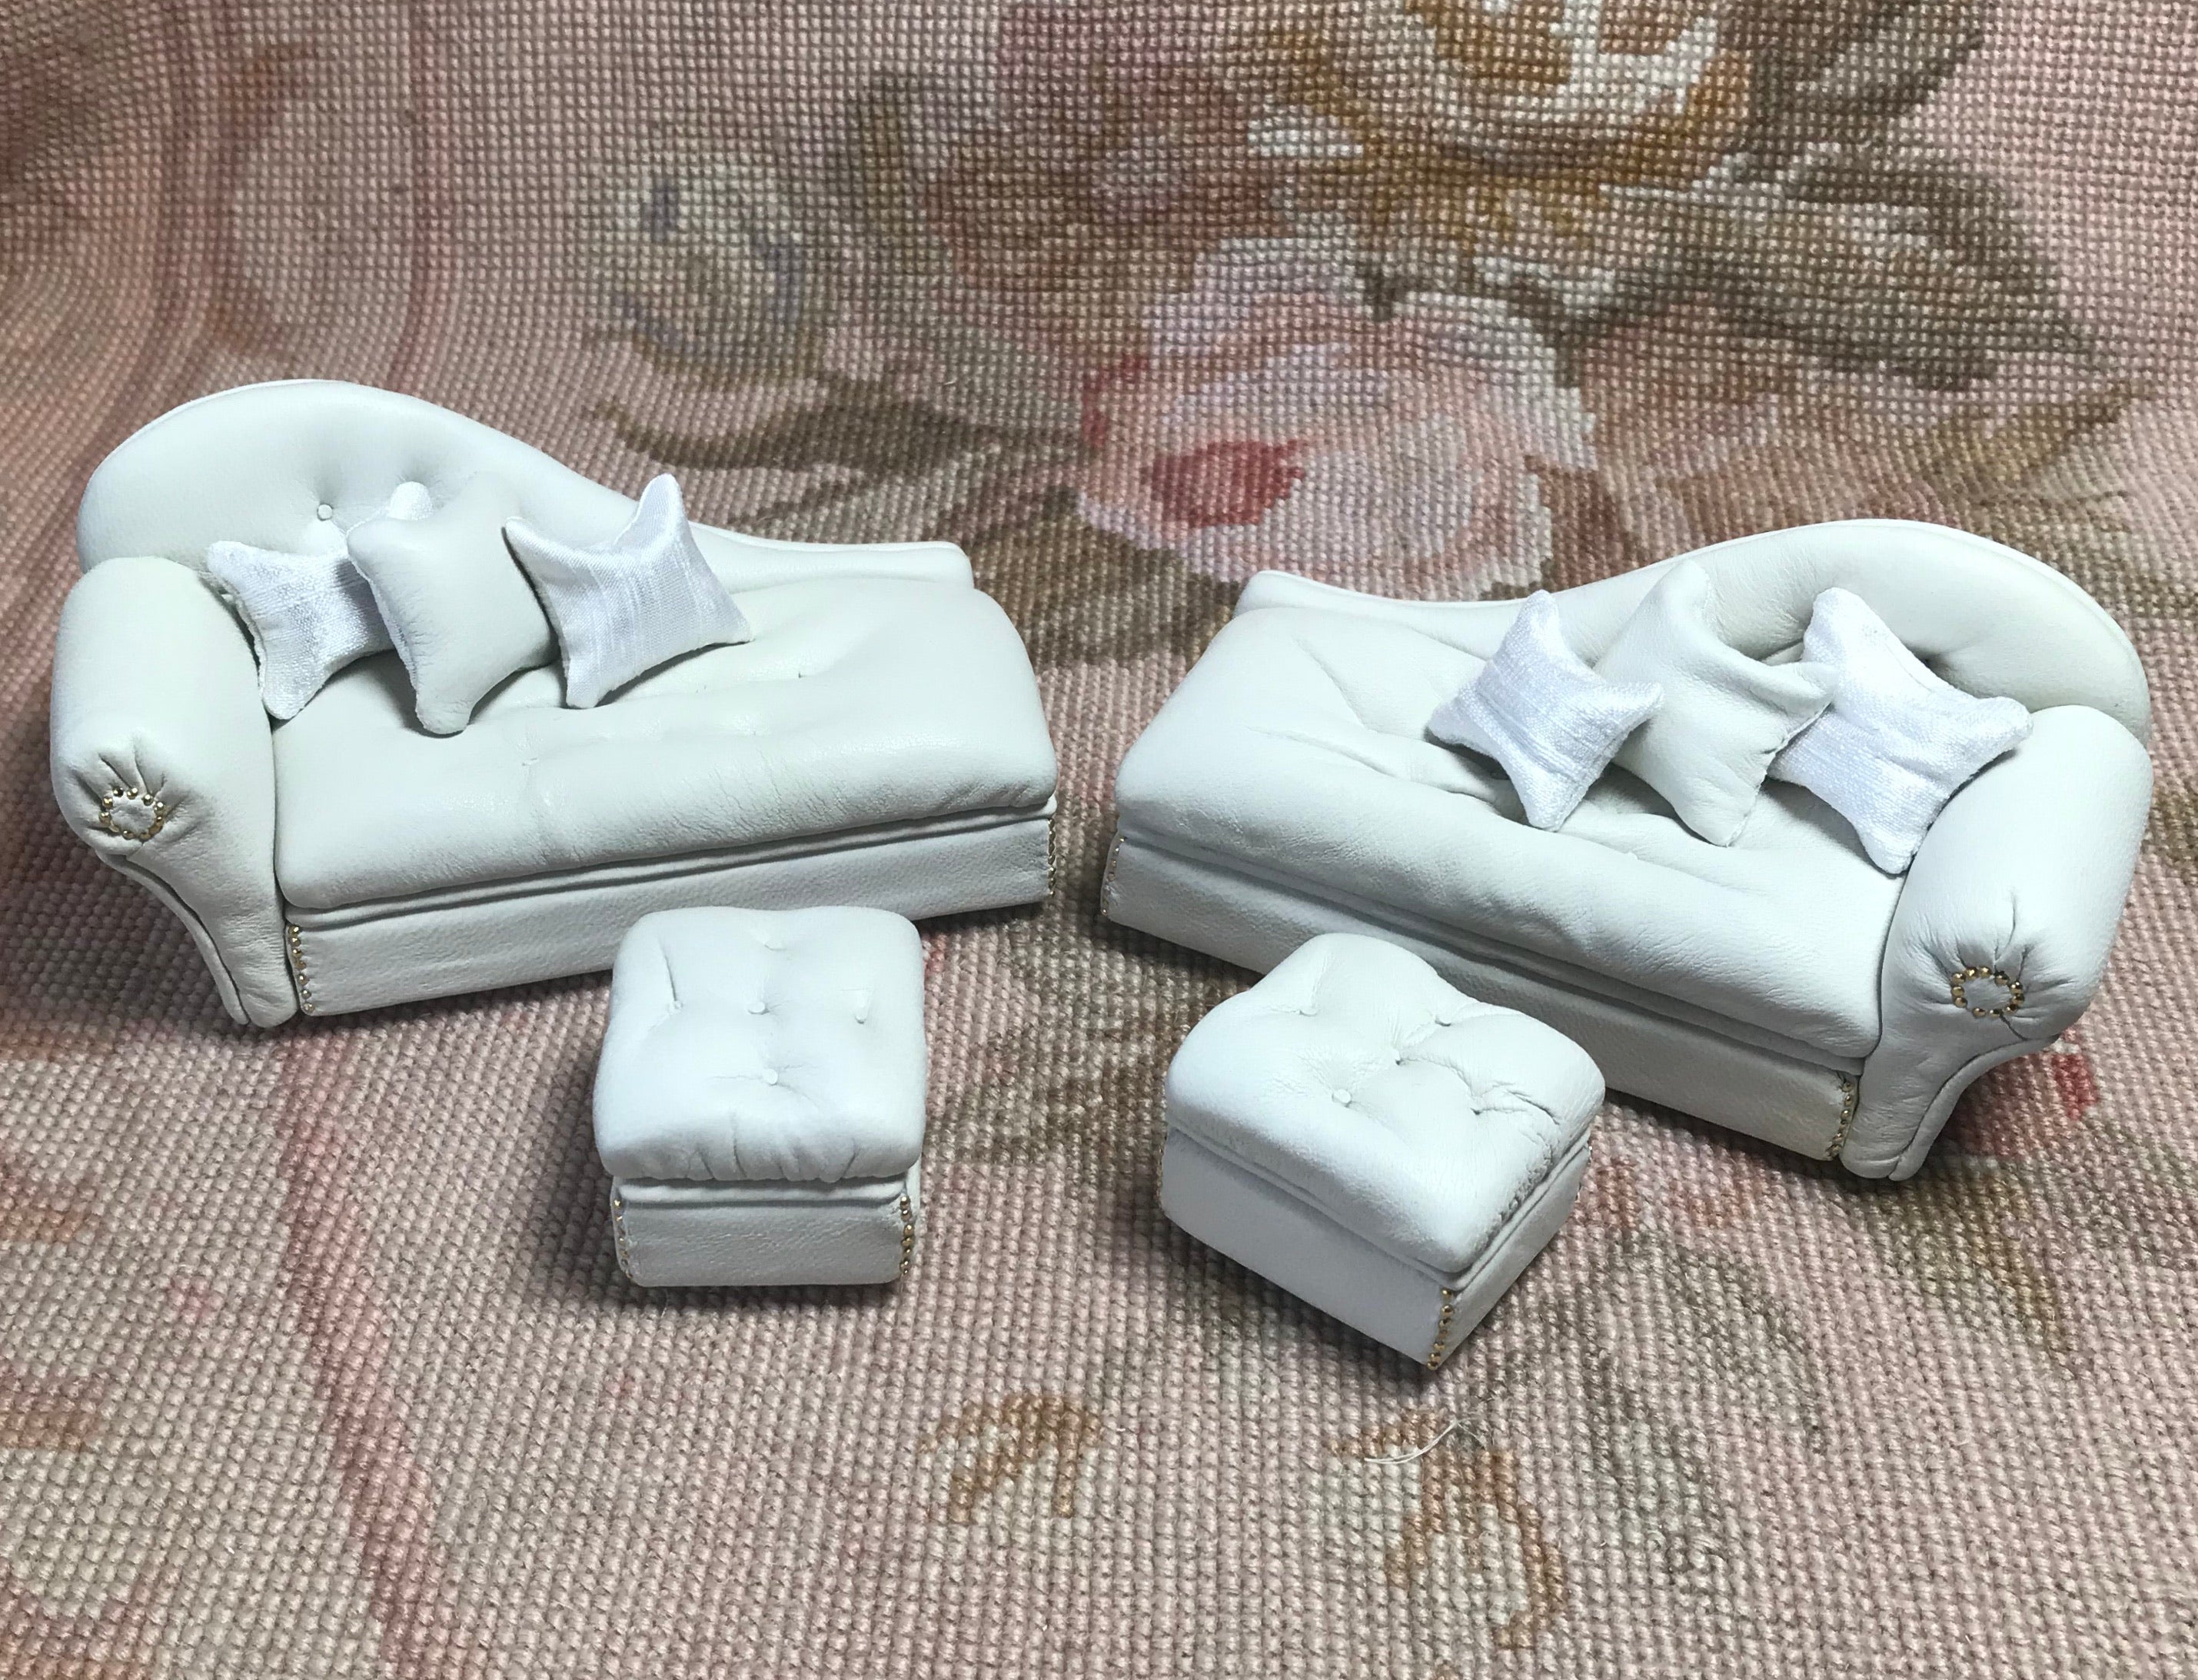 Sofa Seat Couch Chaise Lounge Divan Settee Leather with & Ottoman Right 1:12 Dollhouse Miniature